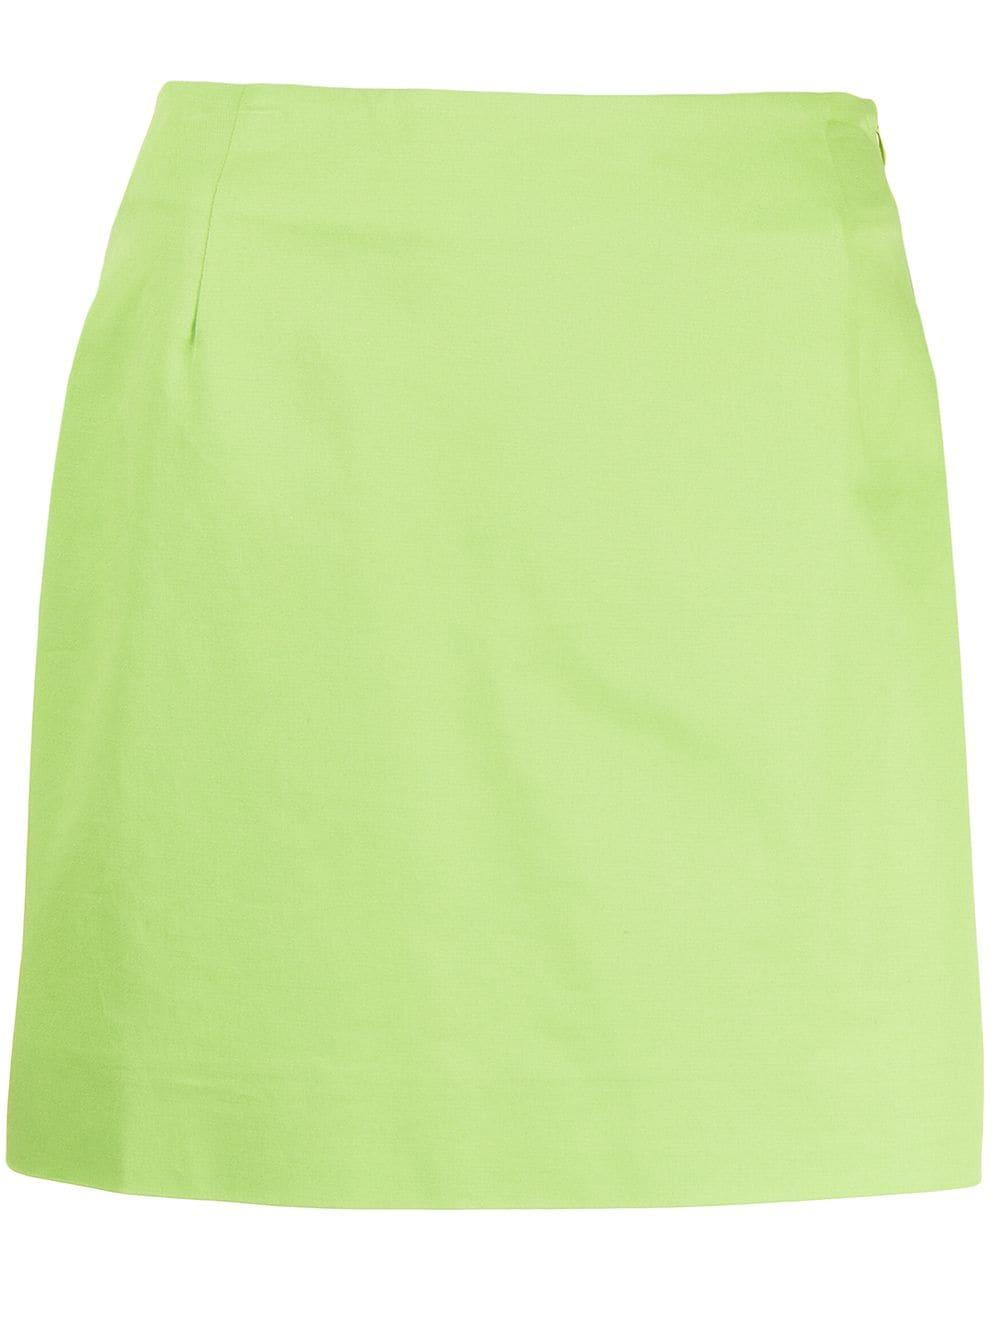 Goia Mini Skirt